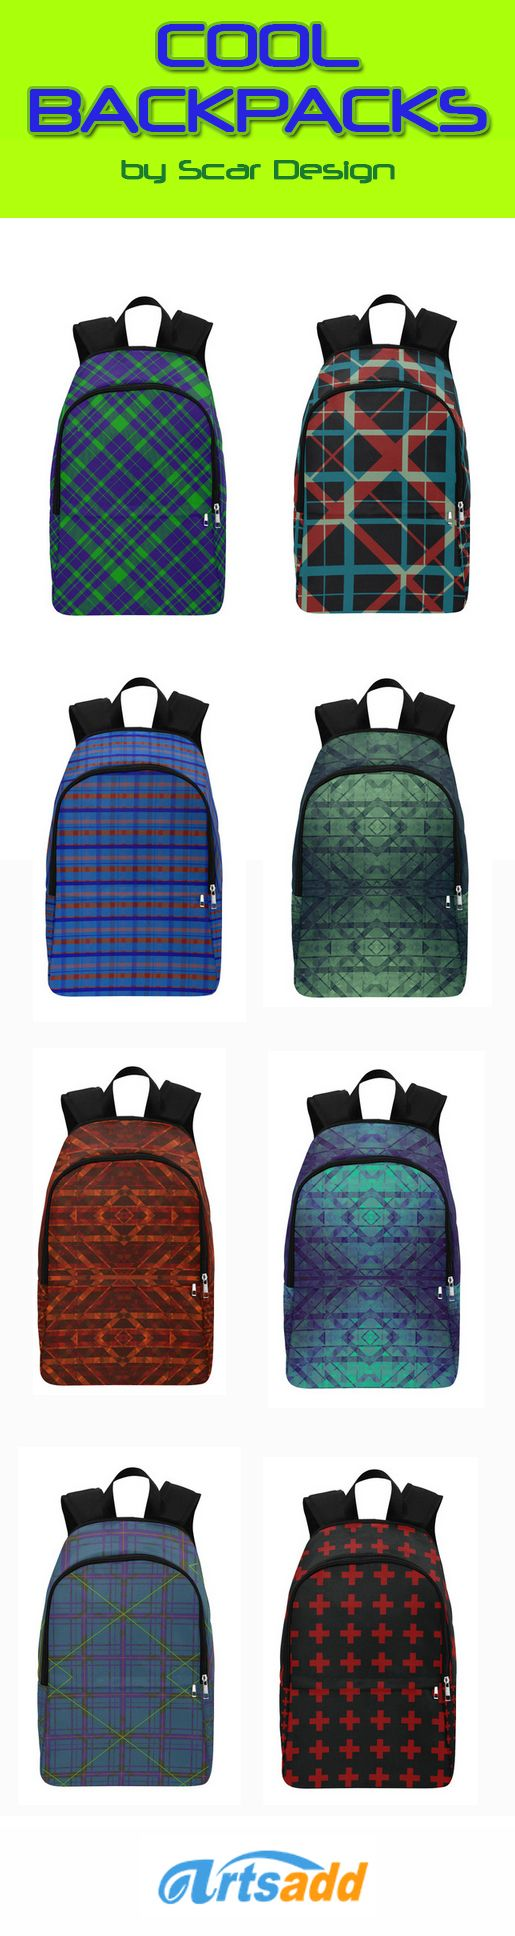 Cool Backpacks by Scar Design by Scar Design  #plaid #plaidbackpack #rdesign #modernbackpack #modern #backpack #modernbackpack #buybackpack #giftsforhim #giftsforher #coolbackpack #artsadd #scardesign #scifidesign #modernstyle